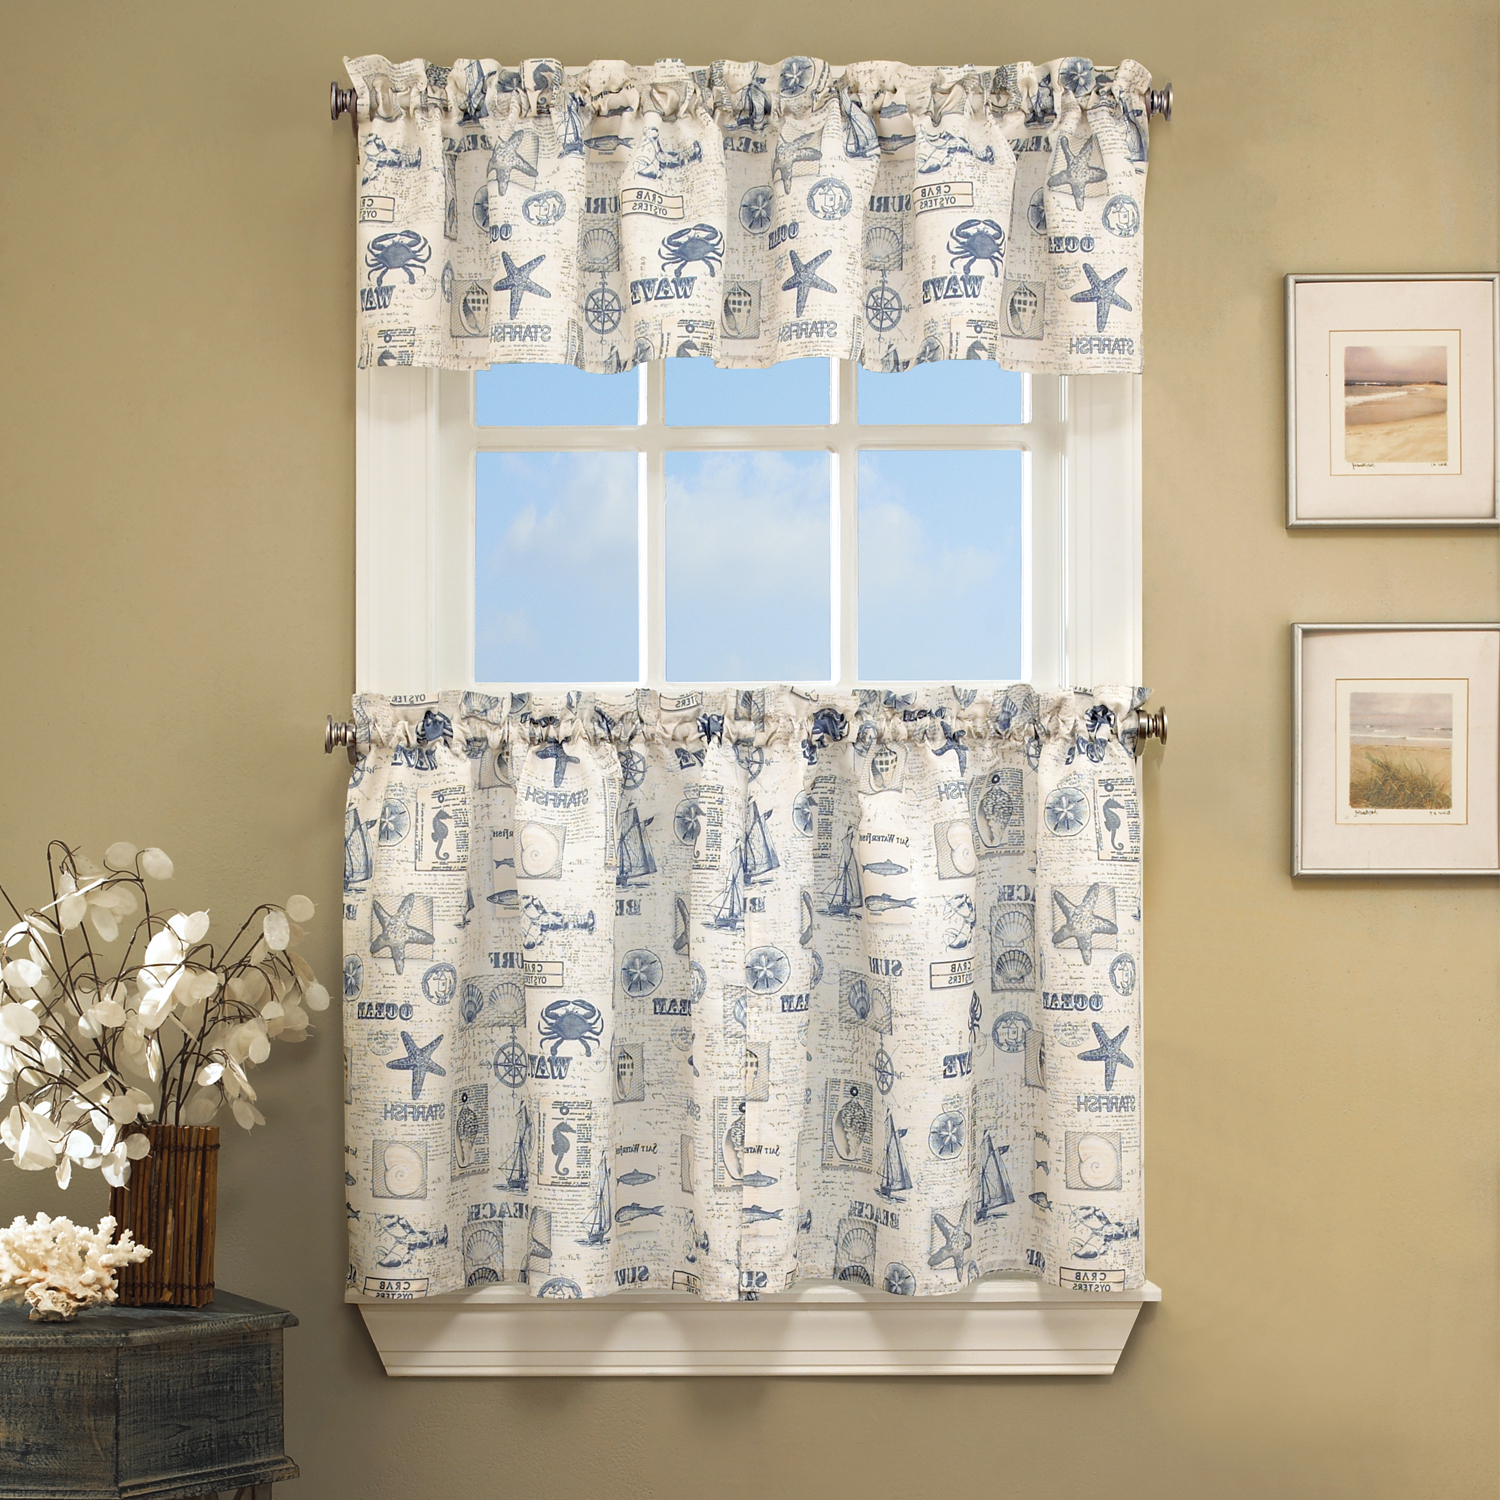 Most Recently Released Tranquility Curtain Tier Pairs With Regard To Details Aboutthe Sea Printed Ocean Beach Images Kitchen Curtains Tiers Or Valance (View 10 of 20)